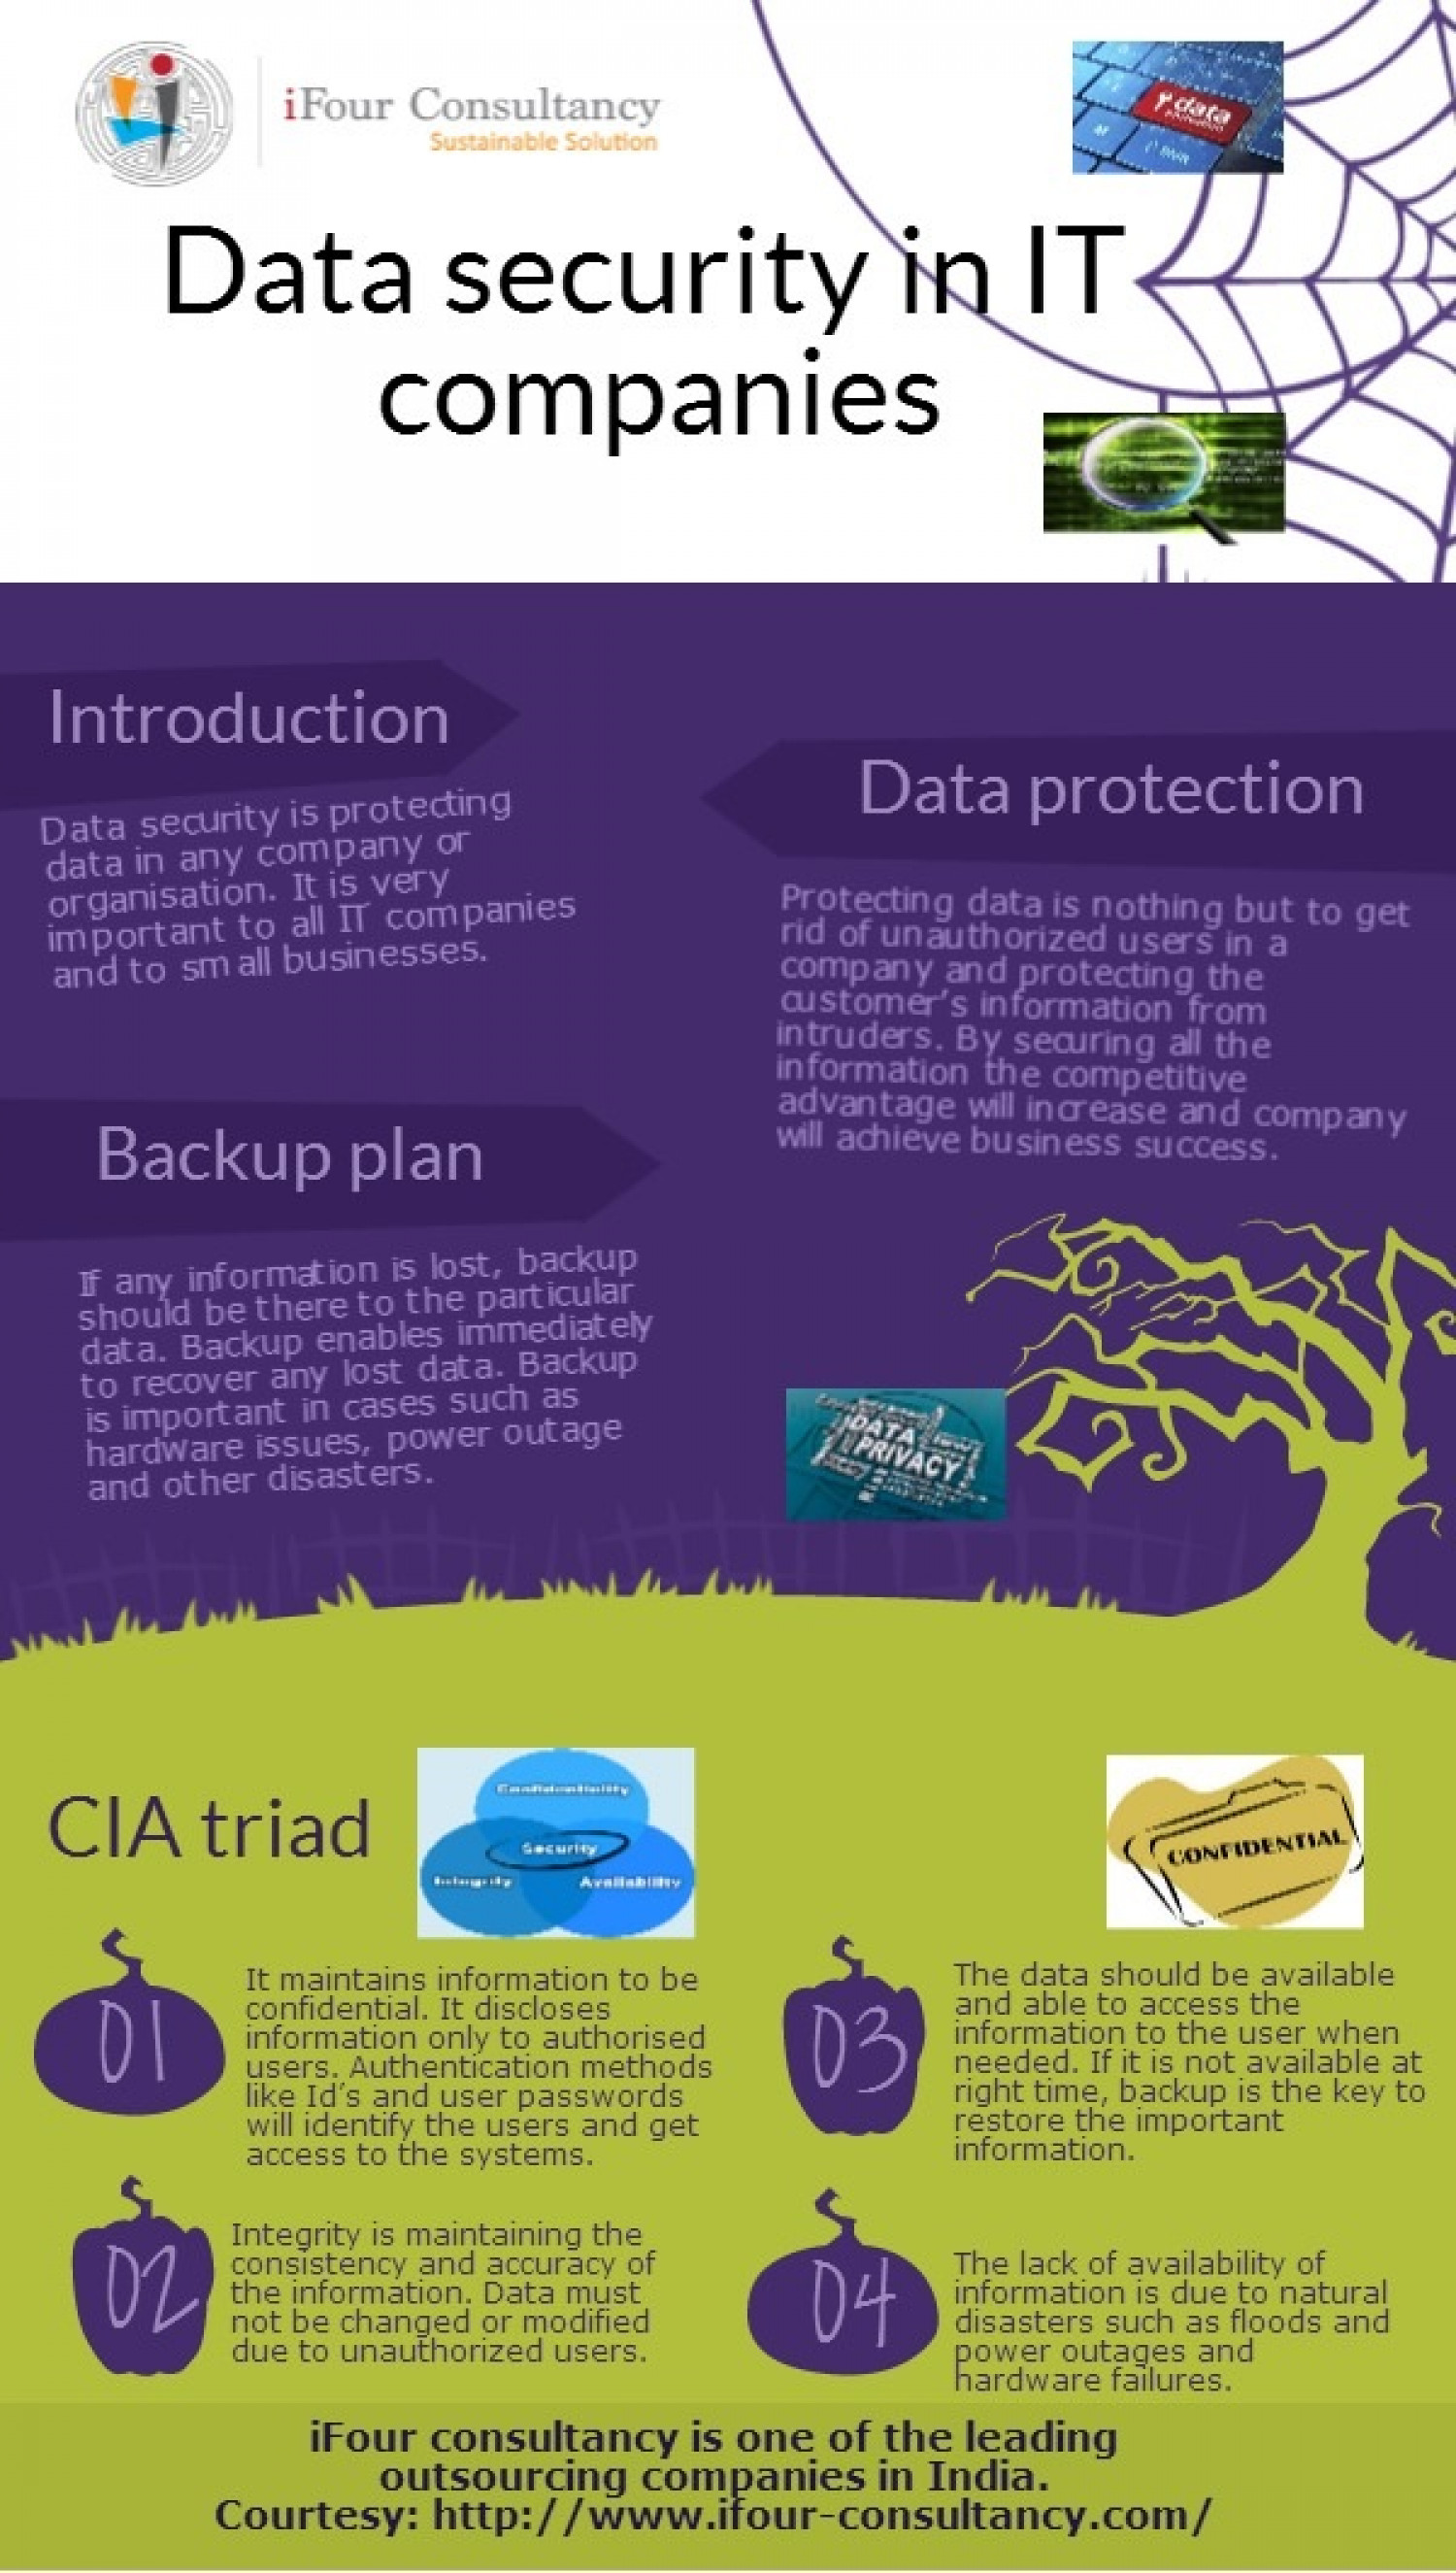 Importance of data security in IT companies Infographic